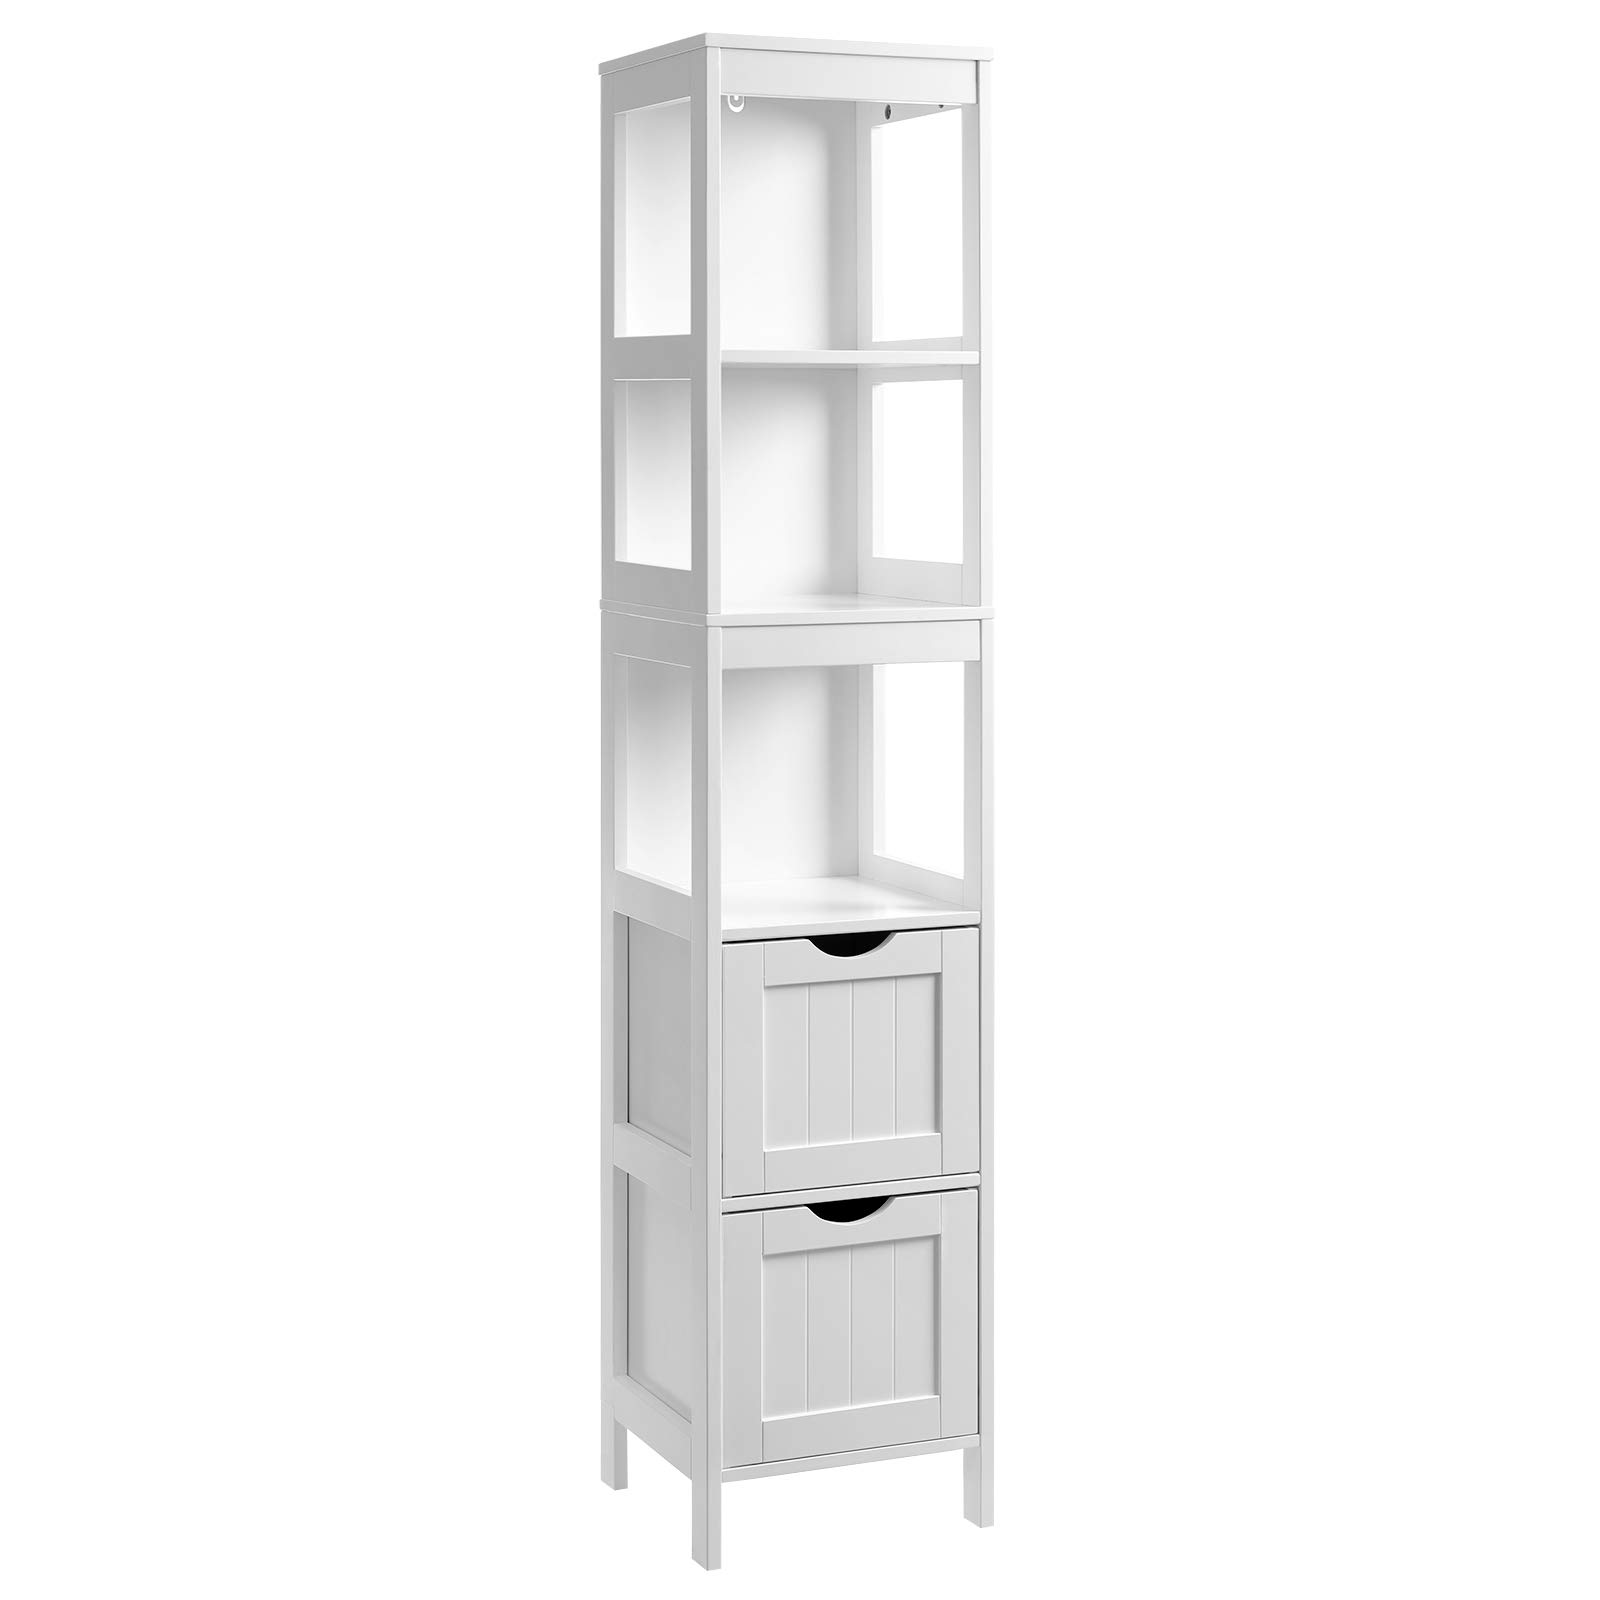 VASAGLE Bathroom Tall Cabinet, Linen Tower, Floor Storage Cupboard, with 2 Drawers and 3 Open Shelves, 11.8 x 11.8 x 56.5 Inches, for Bathroom, Living Room, Kitchen, White UBBC66WT by VASAGLE